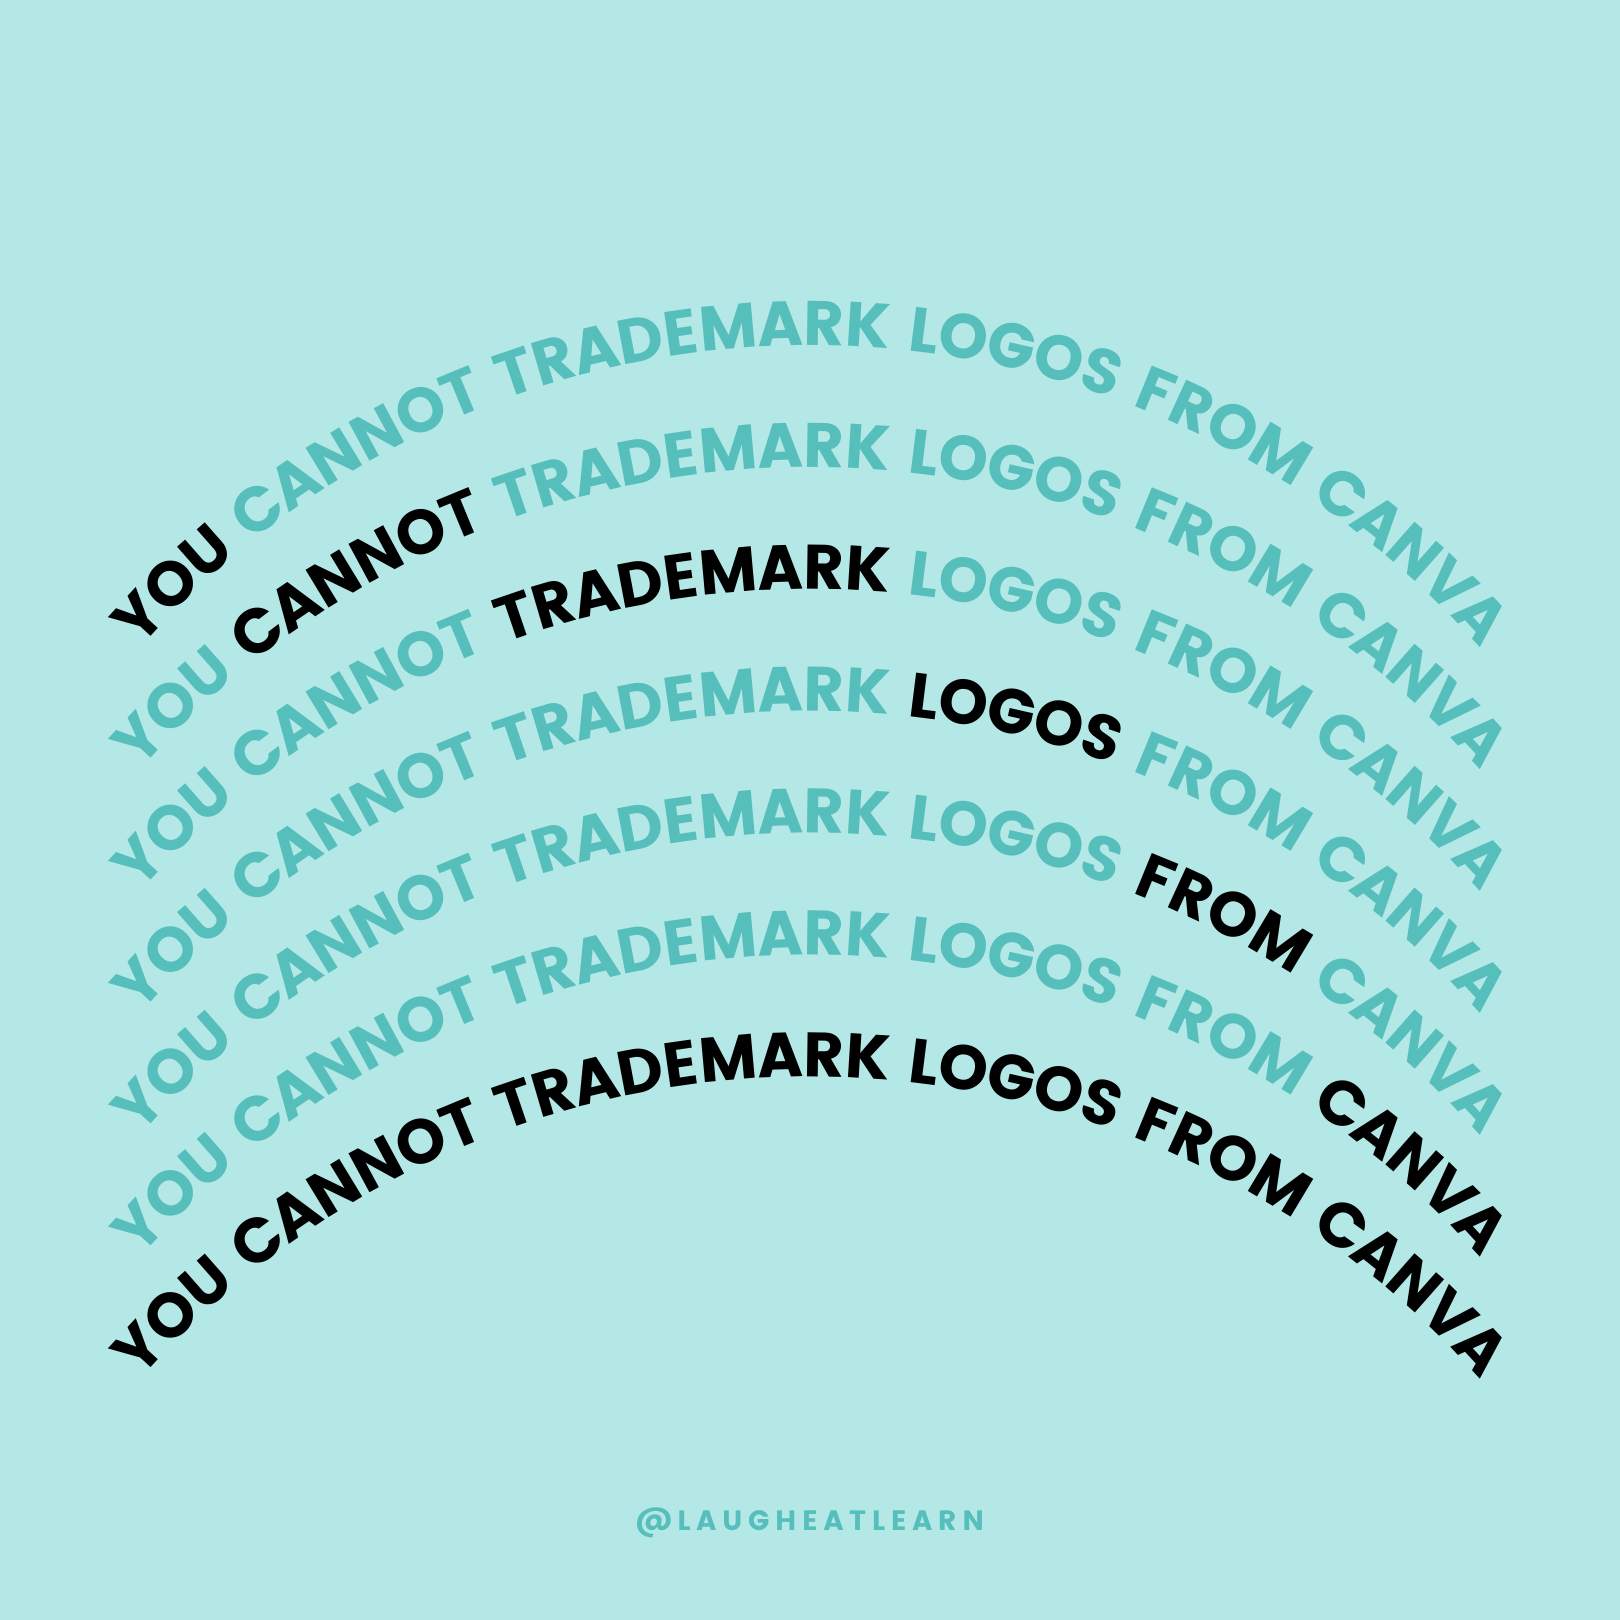 Canva is great.... but is not the best place to create a logo, or even a branding suite. It's because you CANNOT trademark logos from Canva! Did you know this? It's super important to start spreading the word because your business can depend on it.